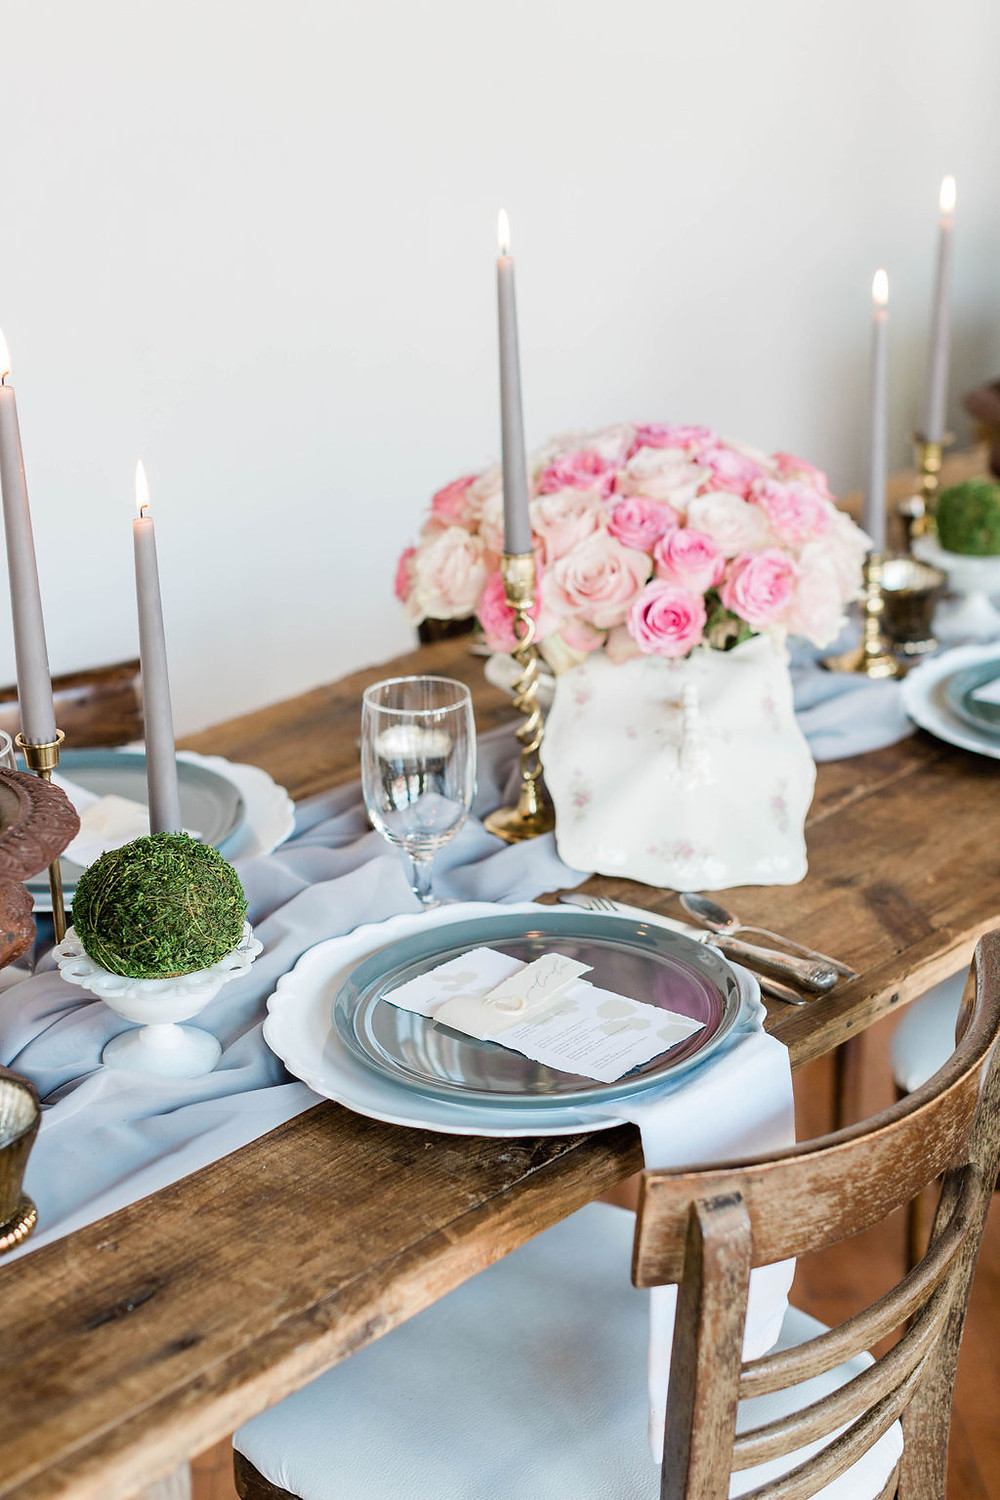 French style hand-lettering at each place setting on farm table